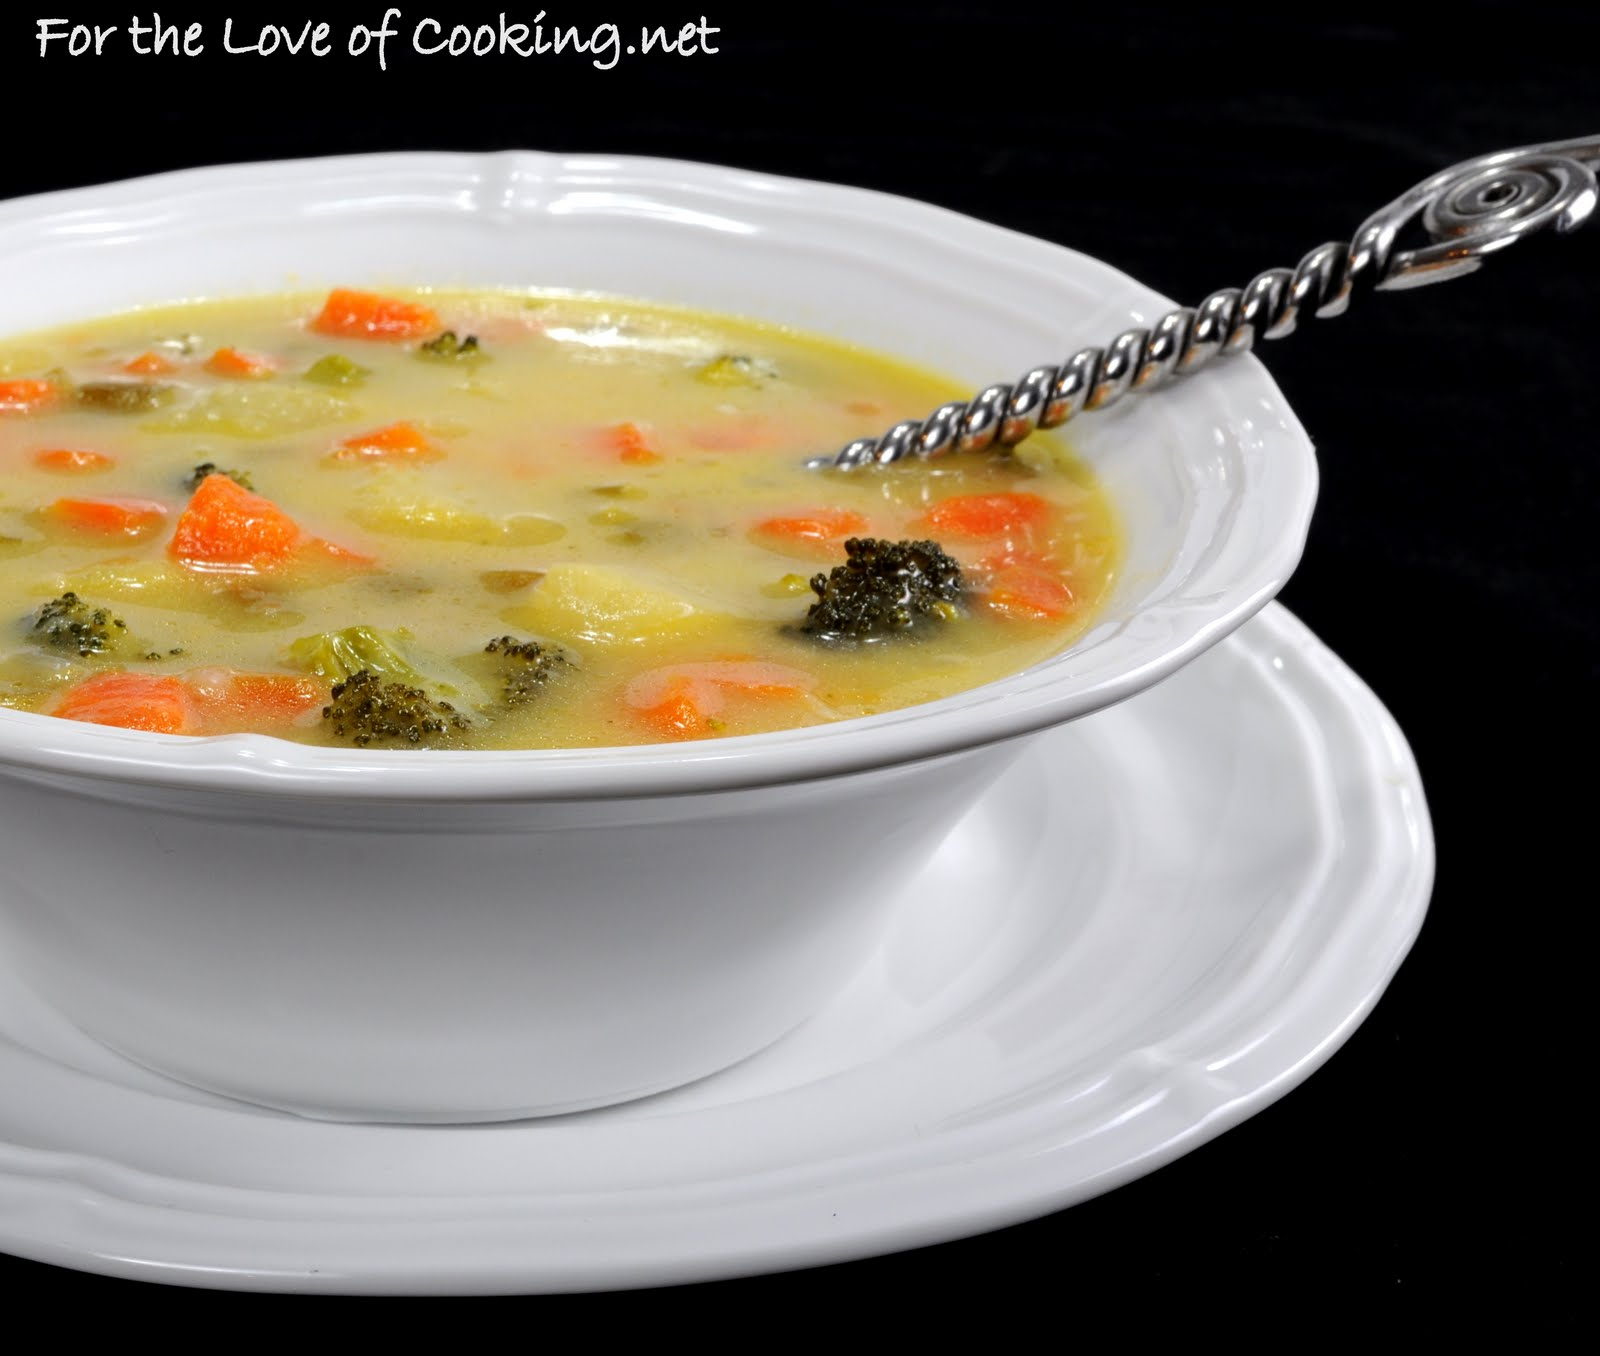 Cheesy Vegetable Chowder | For the Love of Cooking